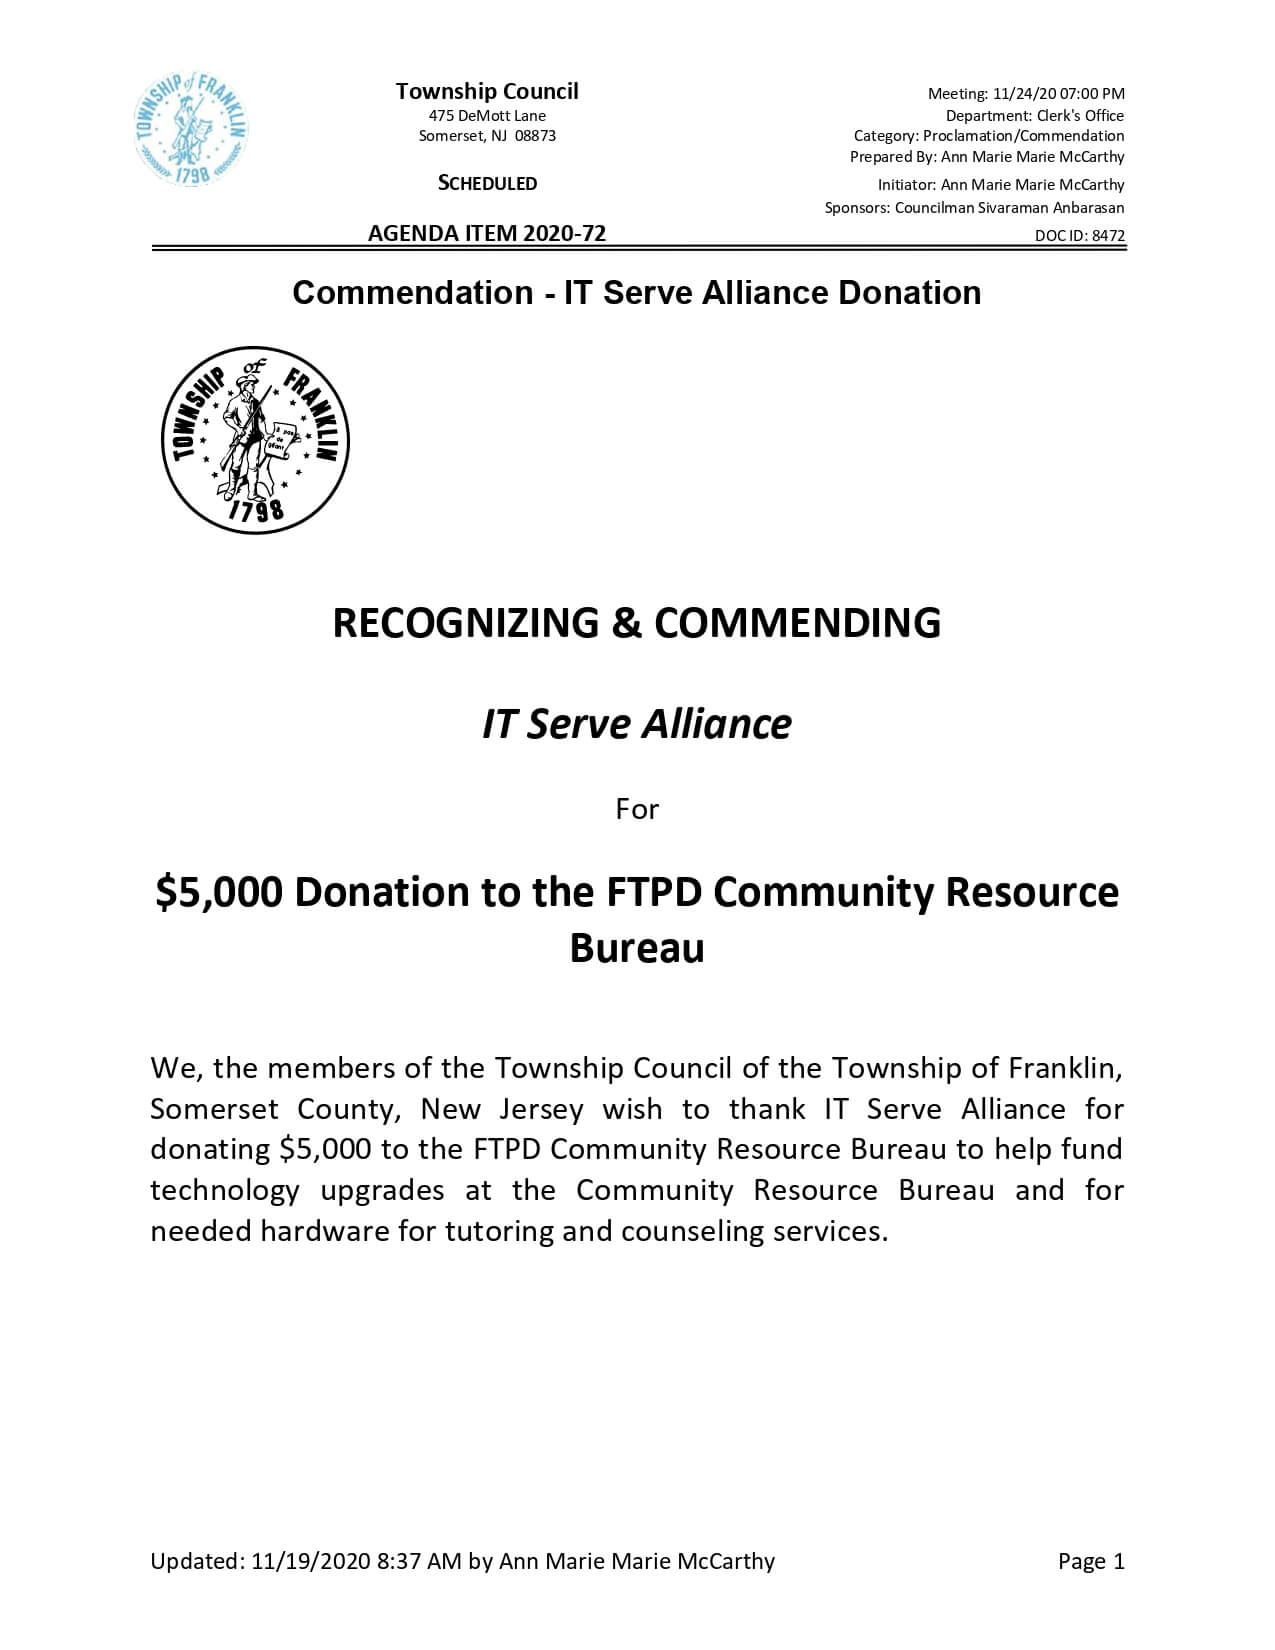 Donated $5,000 to the FTPD Community Resource Bureau